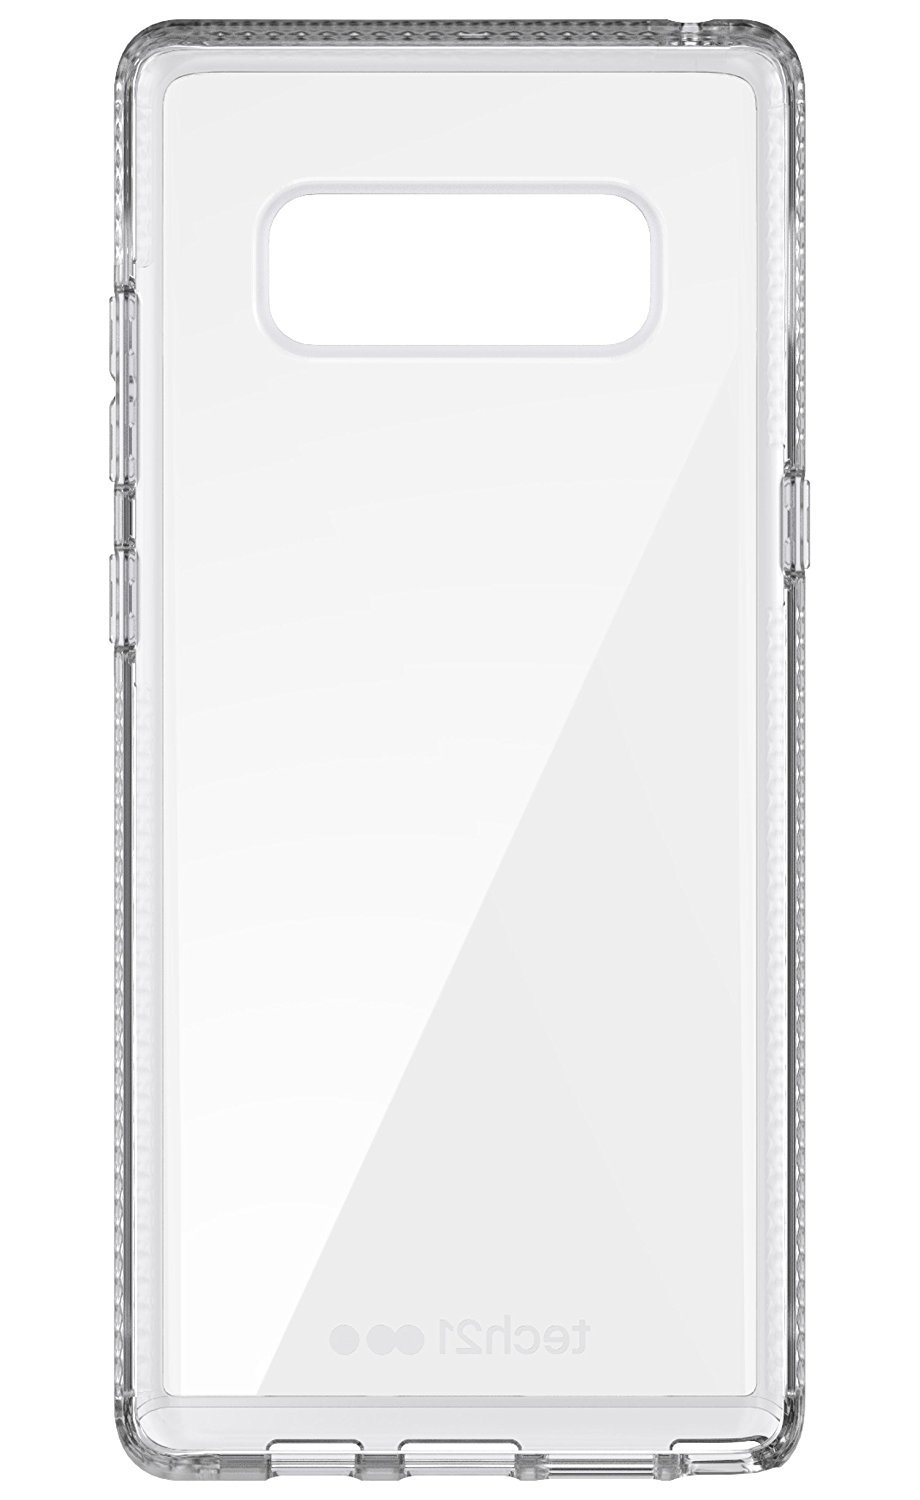 Tech21 Pure Clear Note 8 image